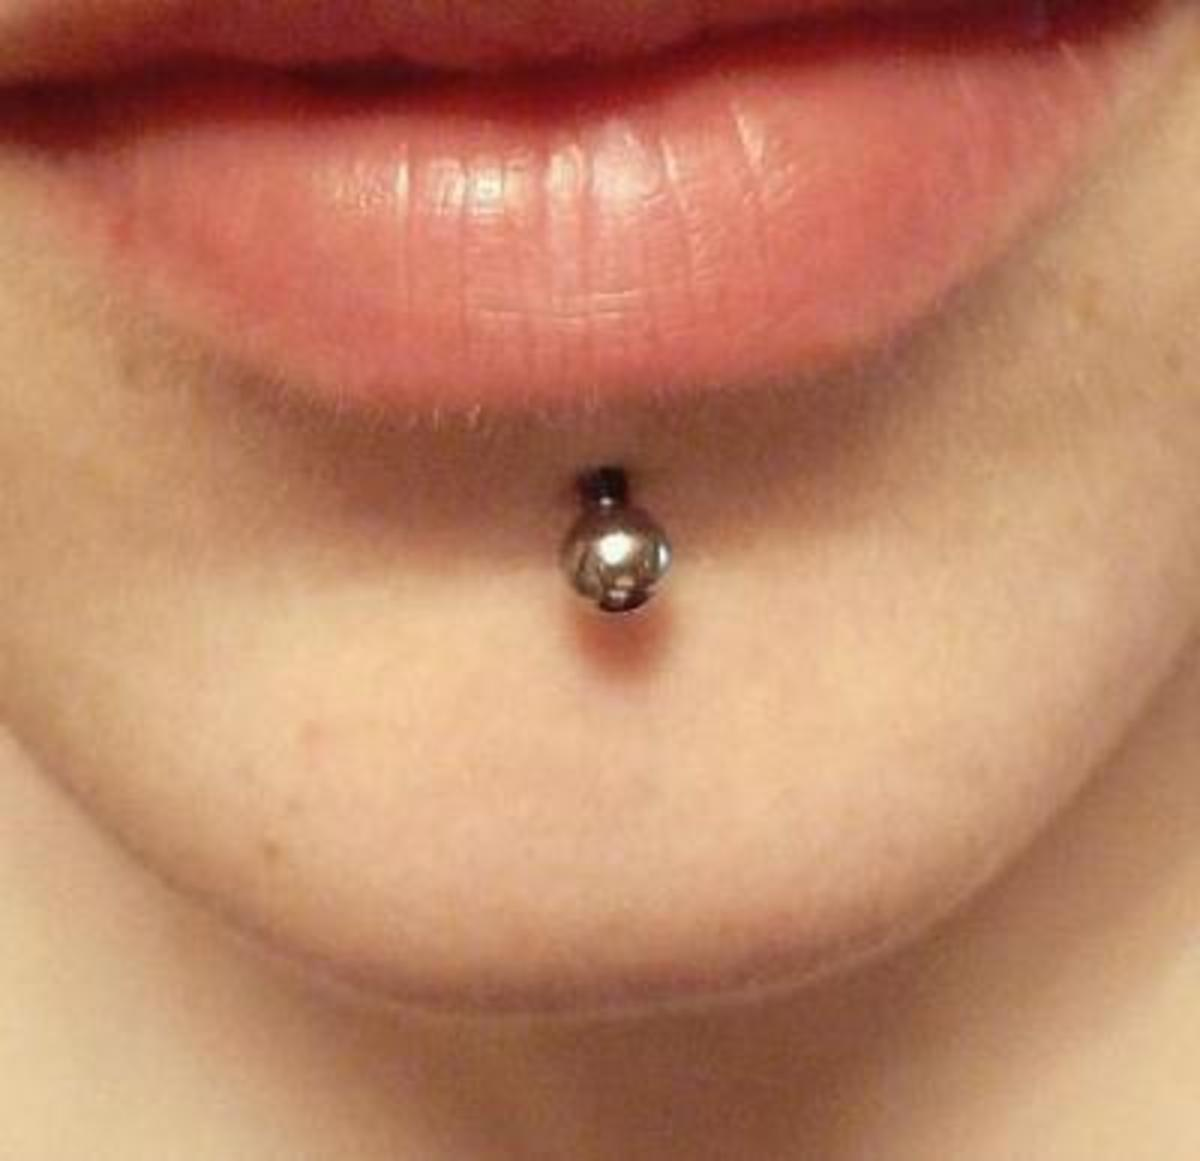 A chin piercing, or labret.